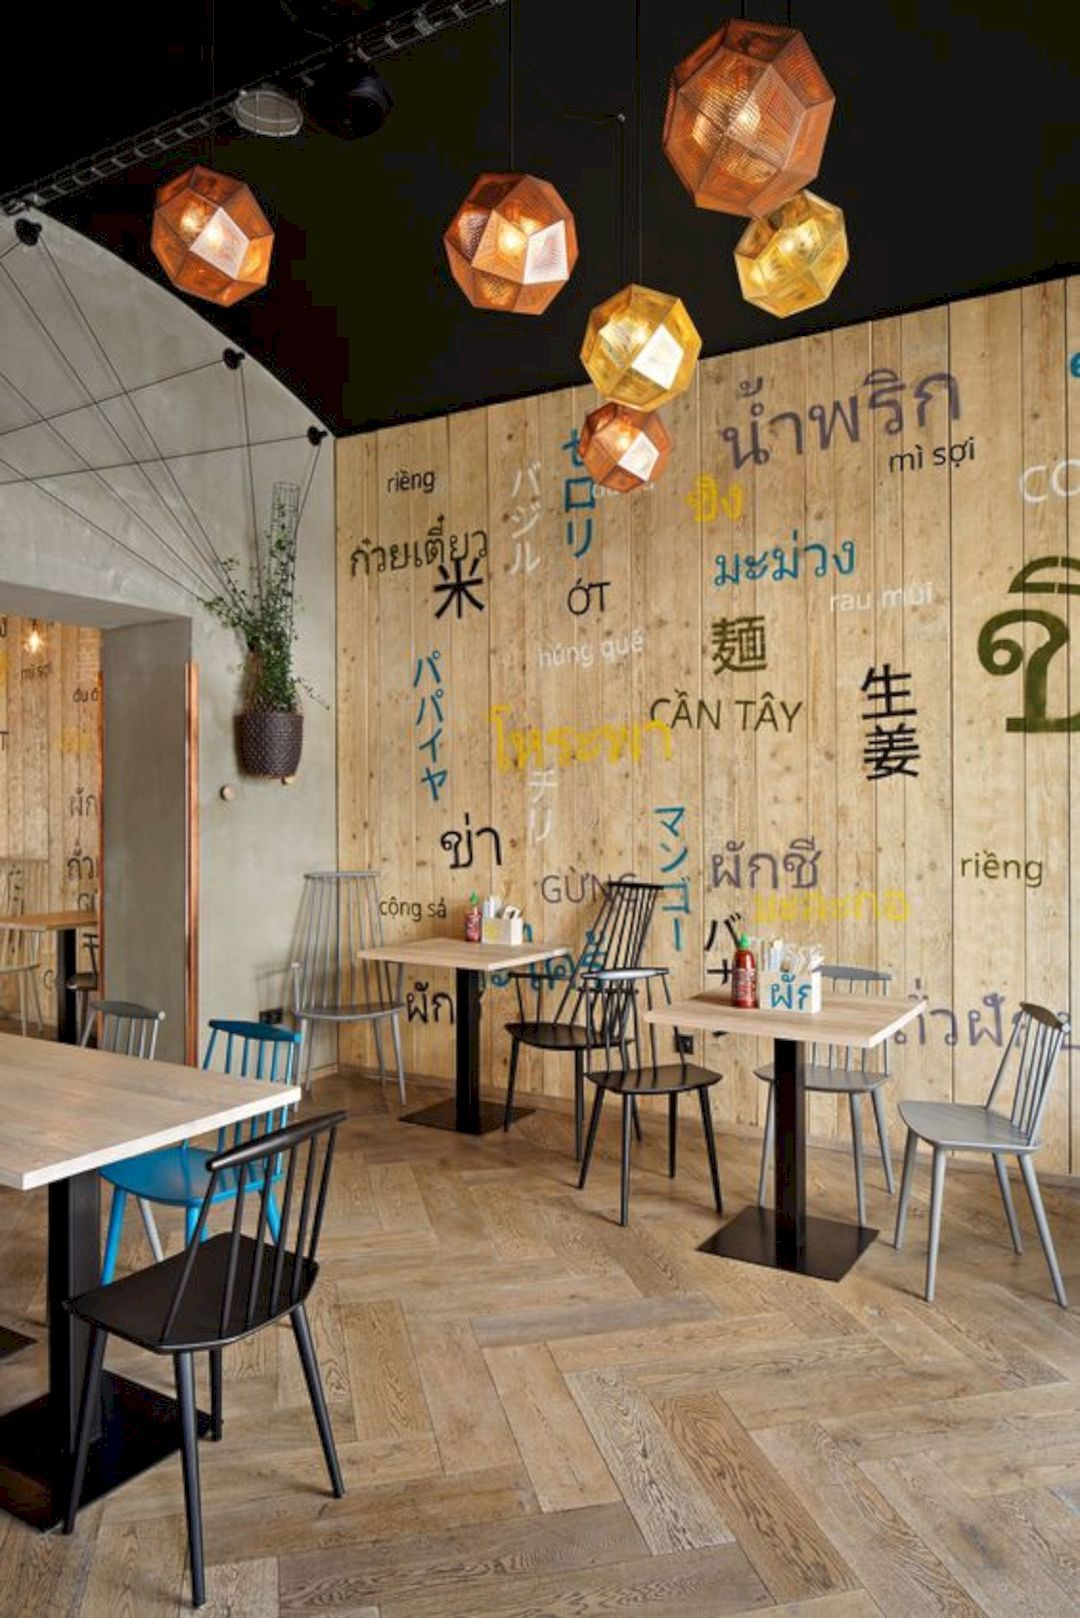 15 Stylish Interior Design Ideas for Thai Restaurant | Thai ...